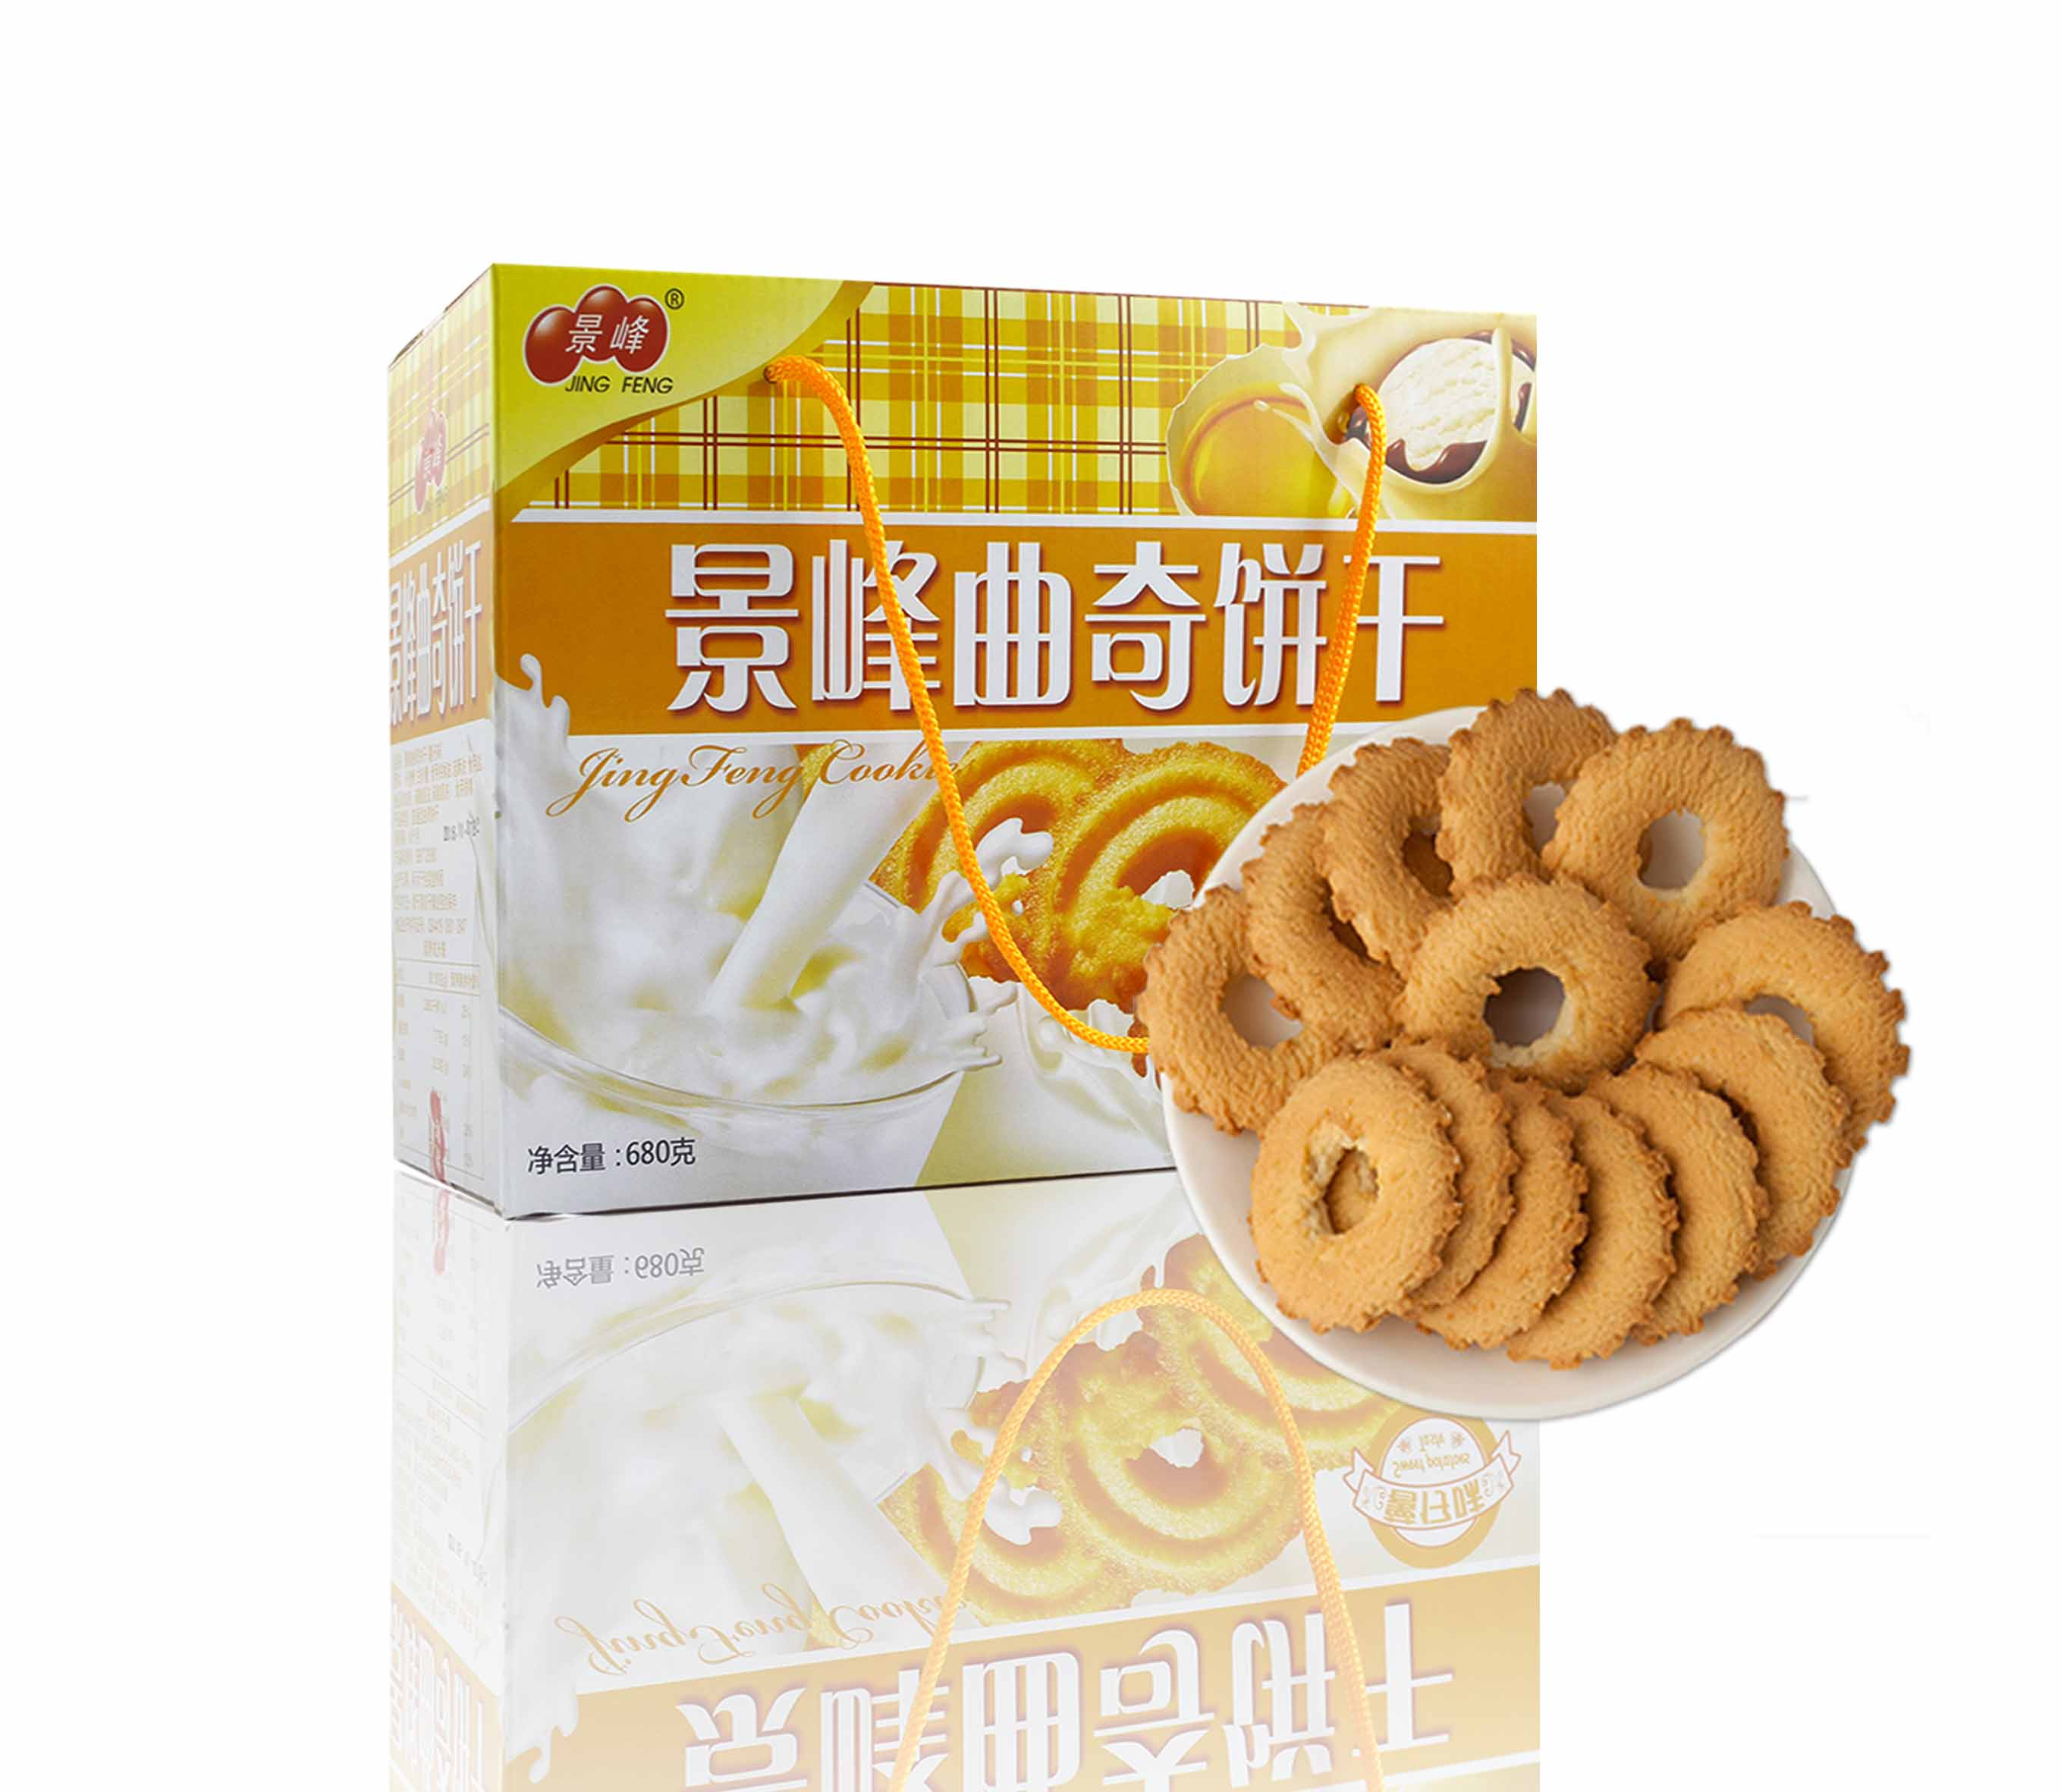 JingFeng Potato cookies (680g)